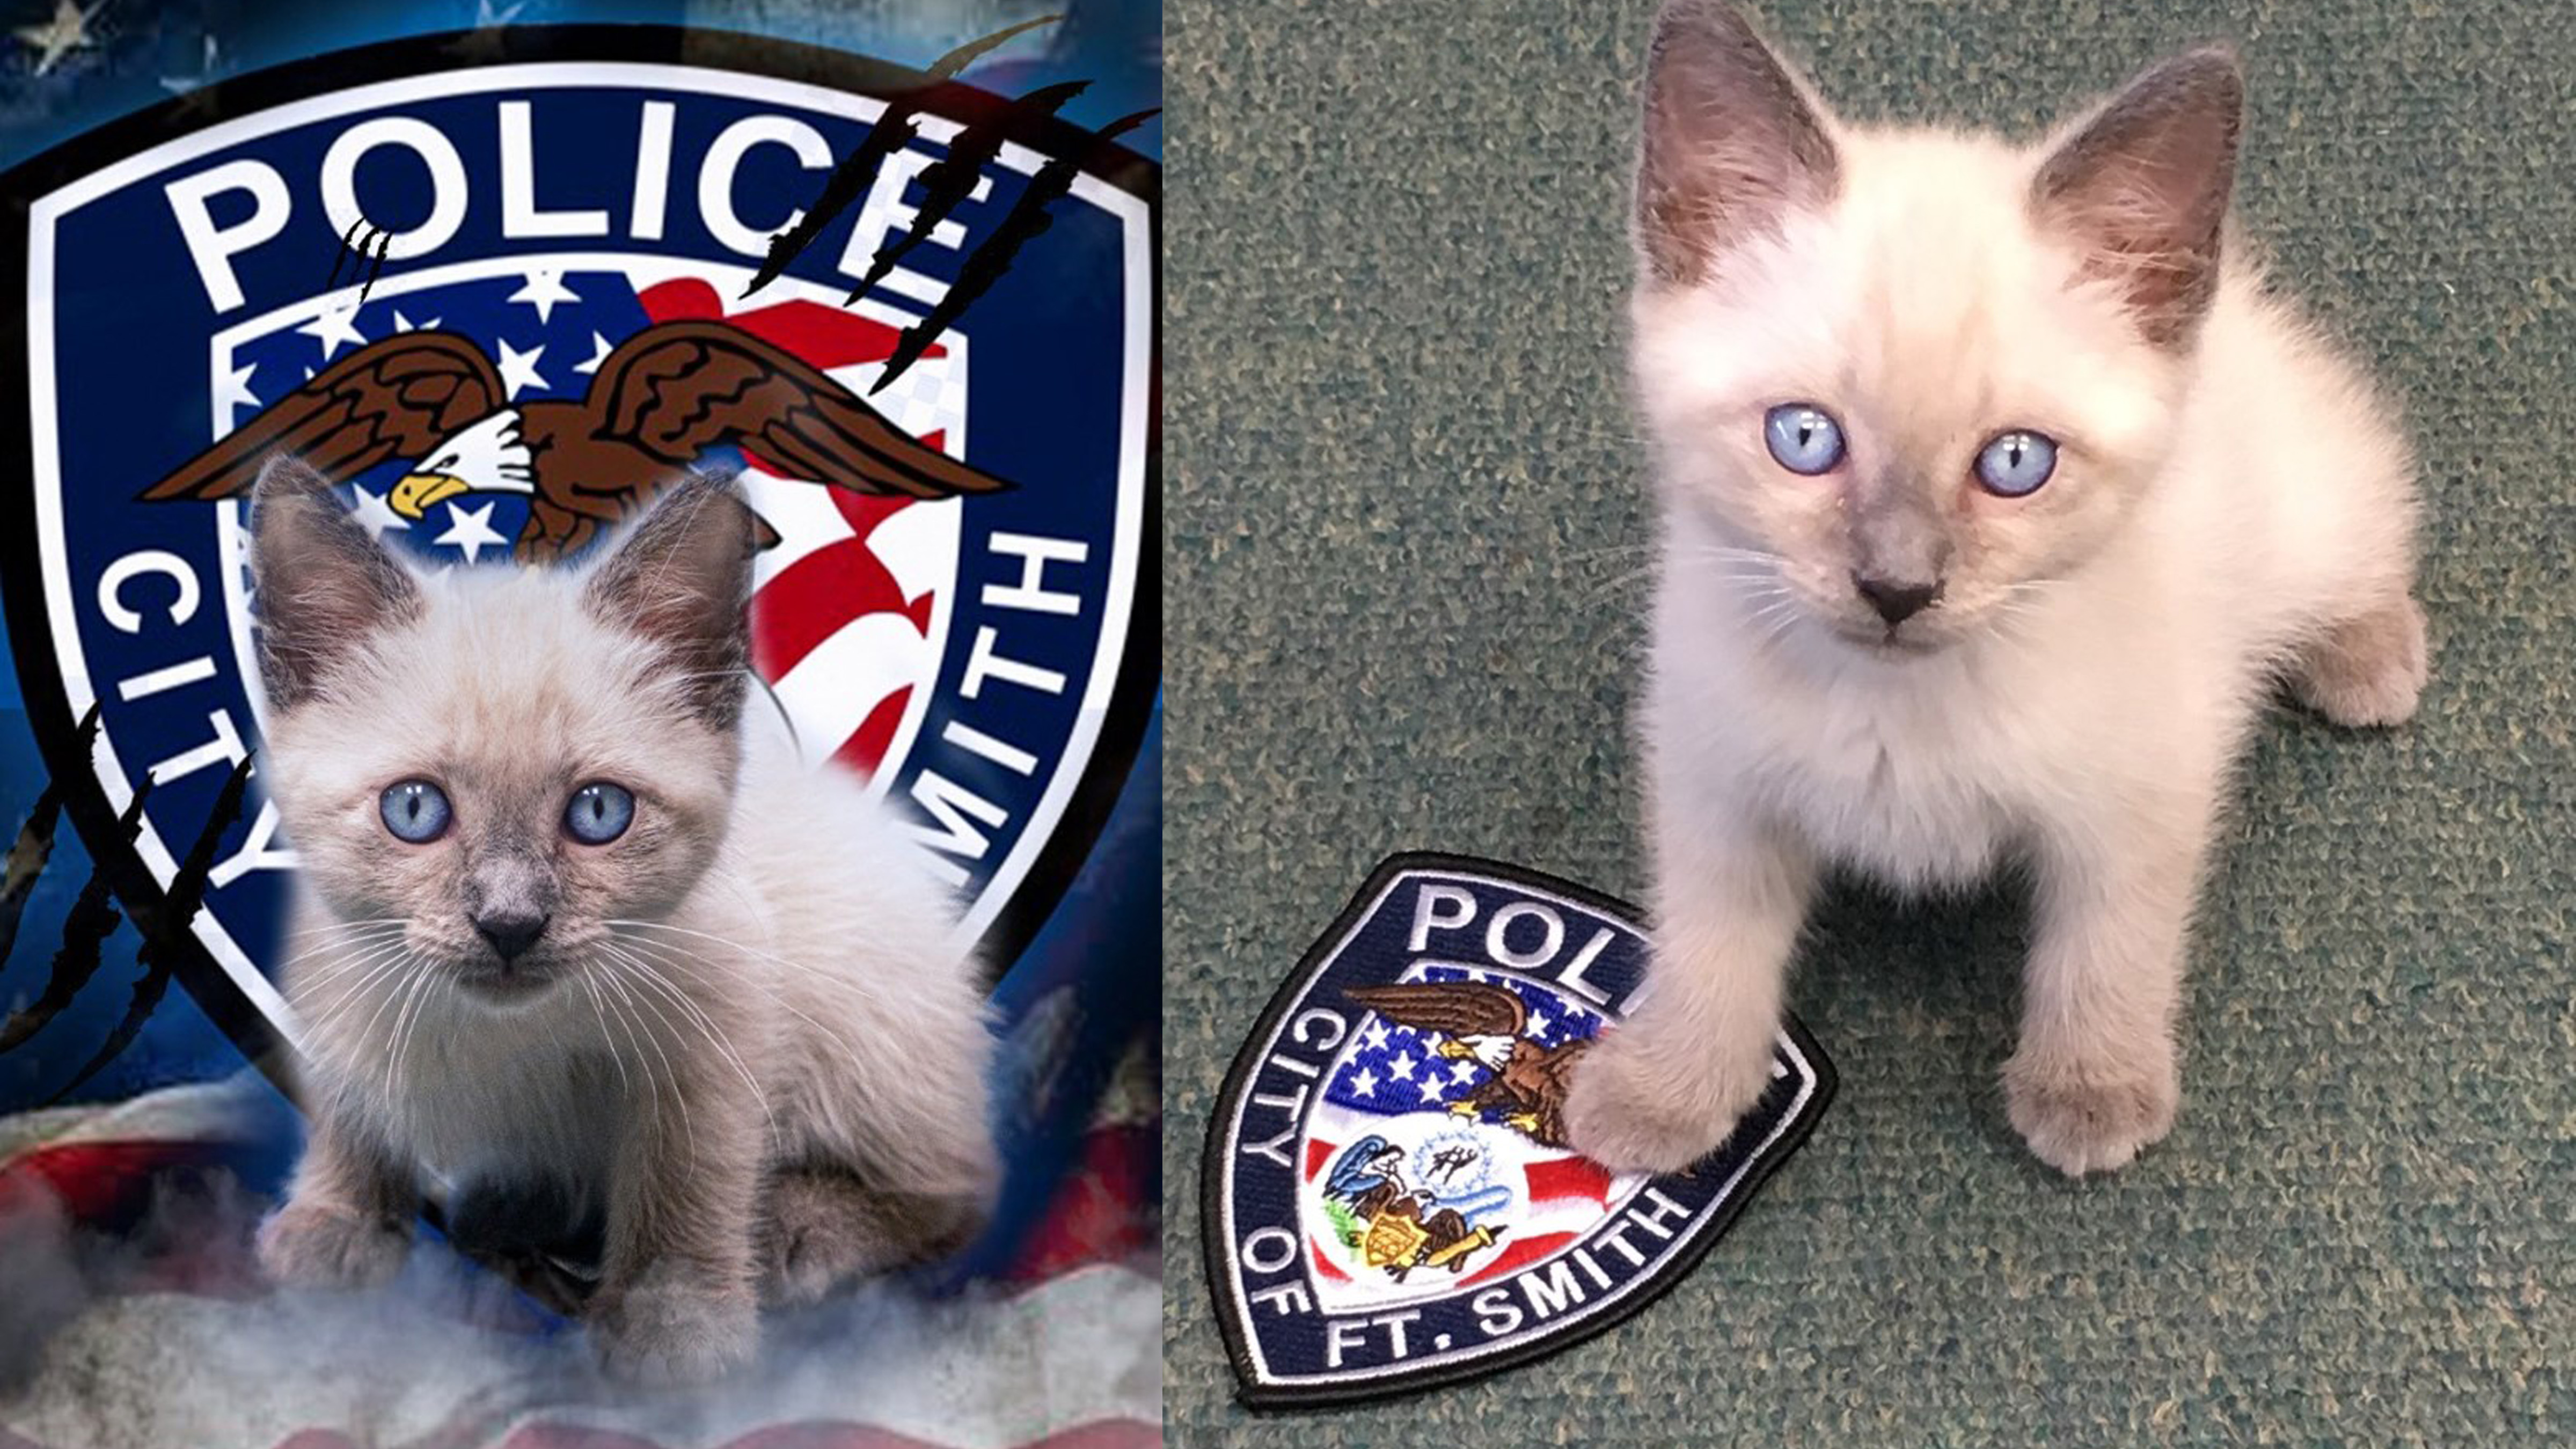 Pawfficer Reporting For Duty Adorable Kitten Joins Ranks